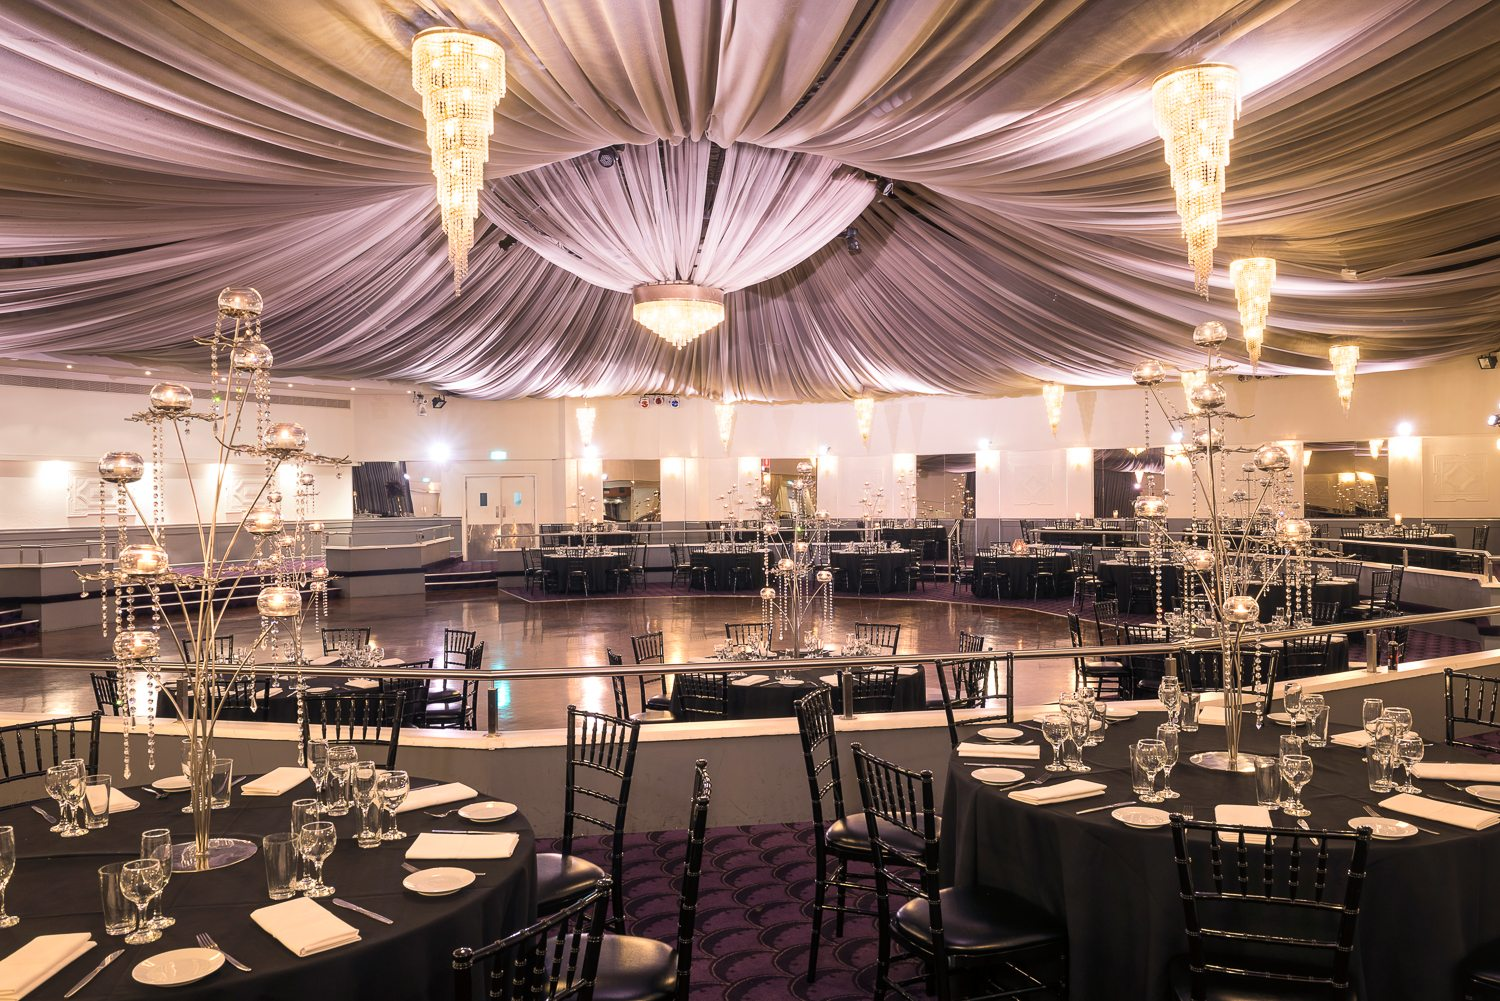 black tables, glass tableware and decoration in ballroom